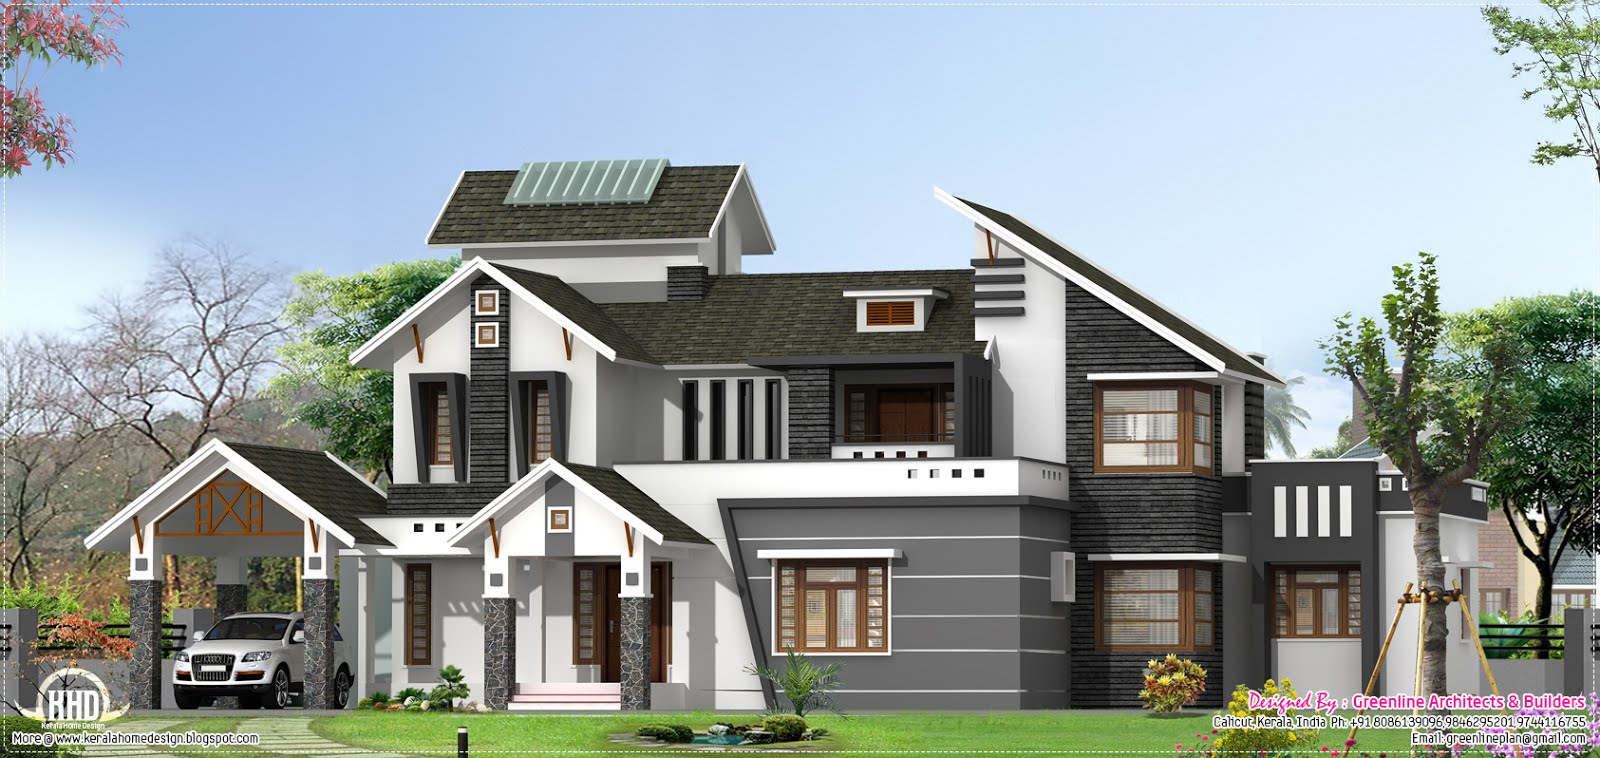 Modern 5 bedroom home design kerala home design and for House designs